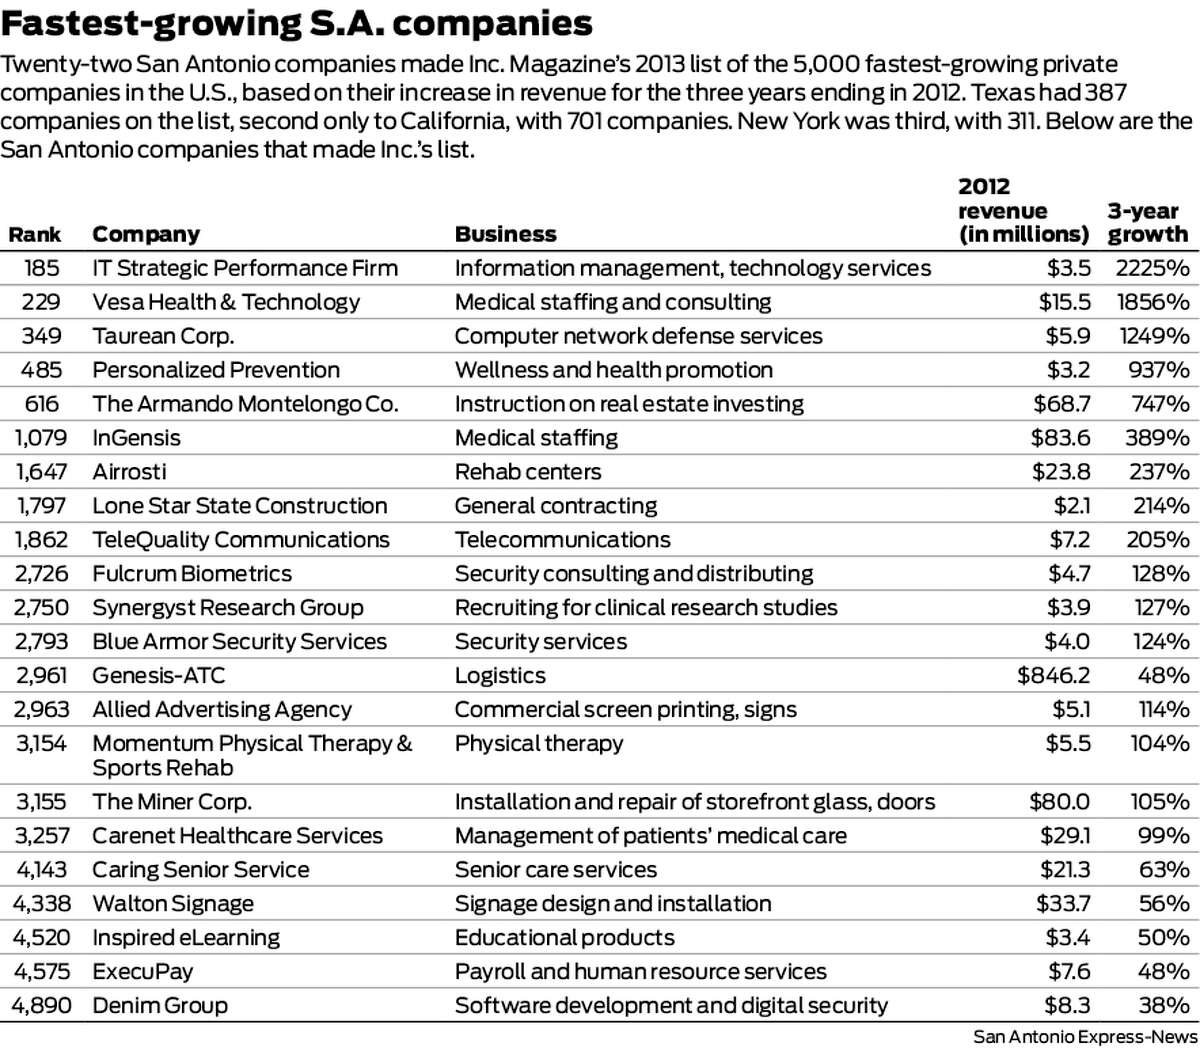 Fastest-growing S.A. companies Click ahead to see the 18 San Antonio companies that made Inc. Magazine's list of the 5,000 fastest-growing private companies in the U.S., based on their increase in revenue for the latest three years.